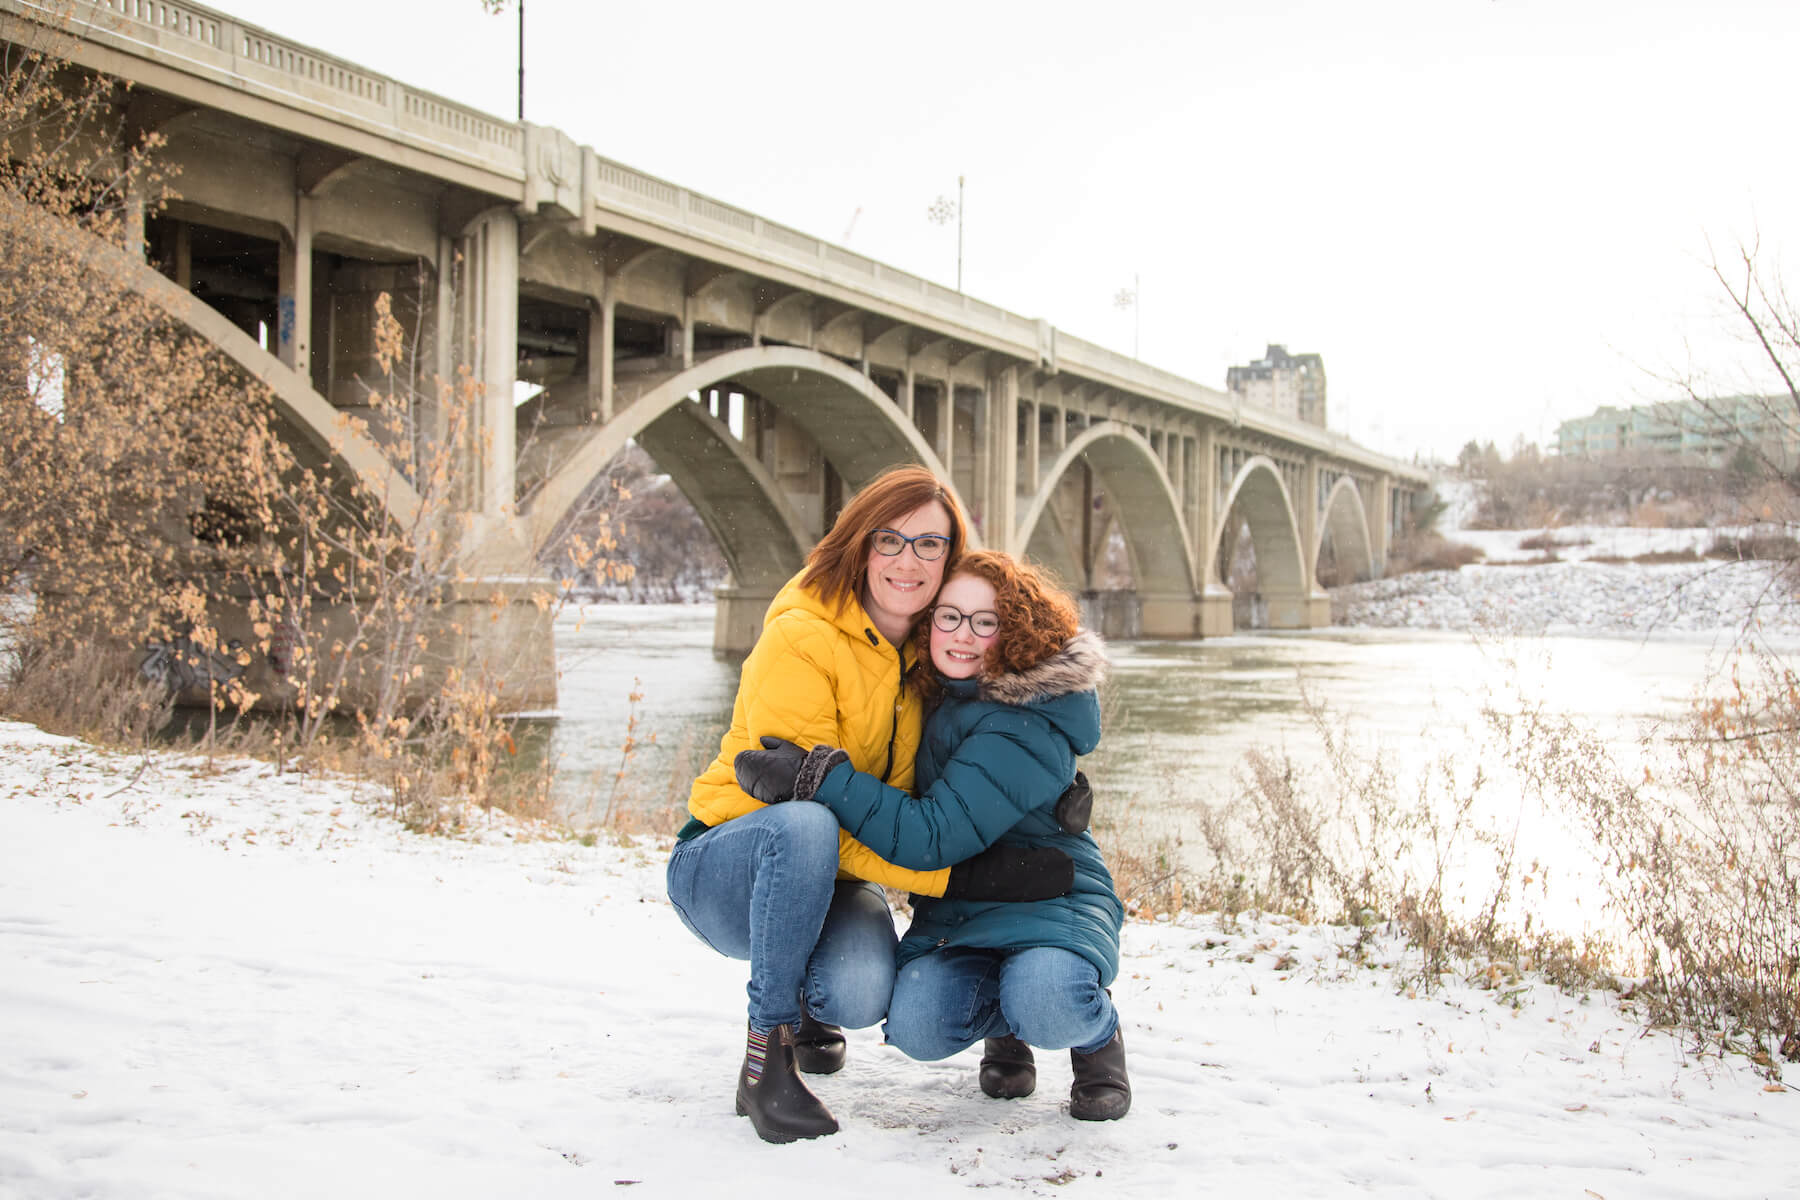 Mother daughter trip in Saskatoon Canada